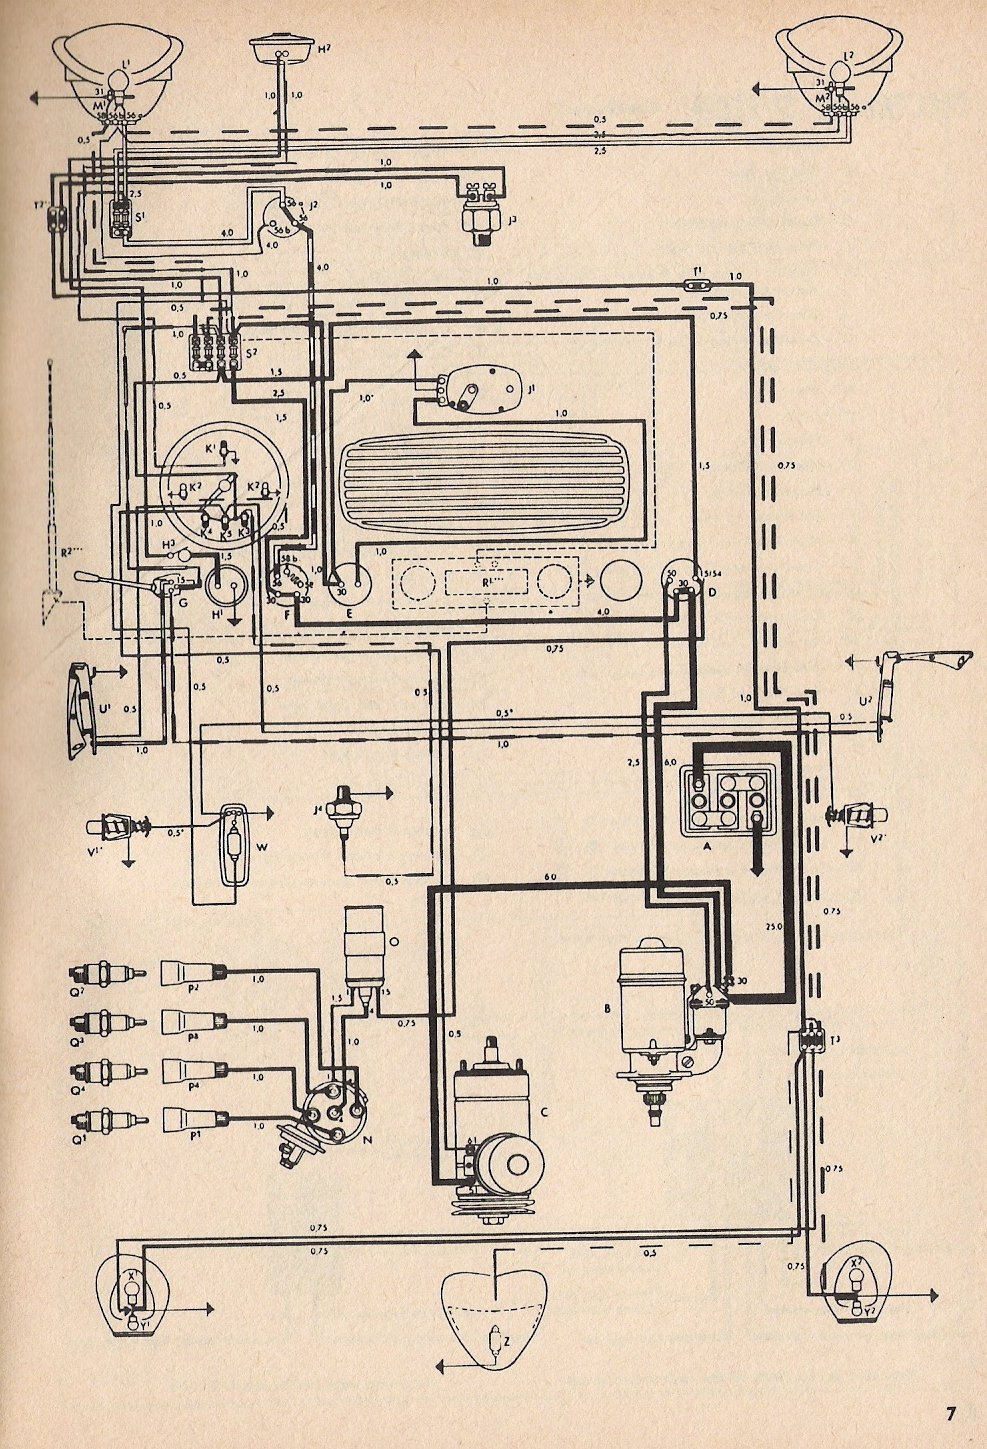 72 Beetle Engine Diagram Wiring Super Vw Schematic